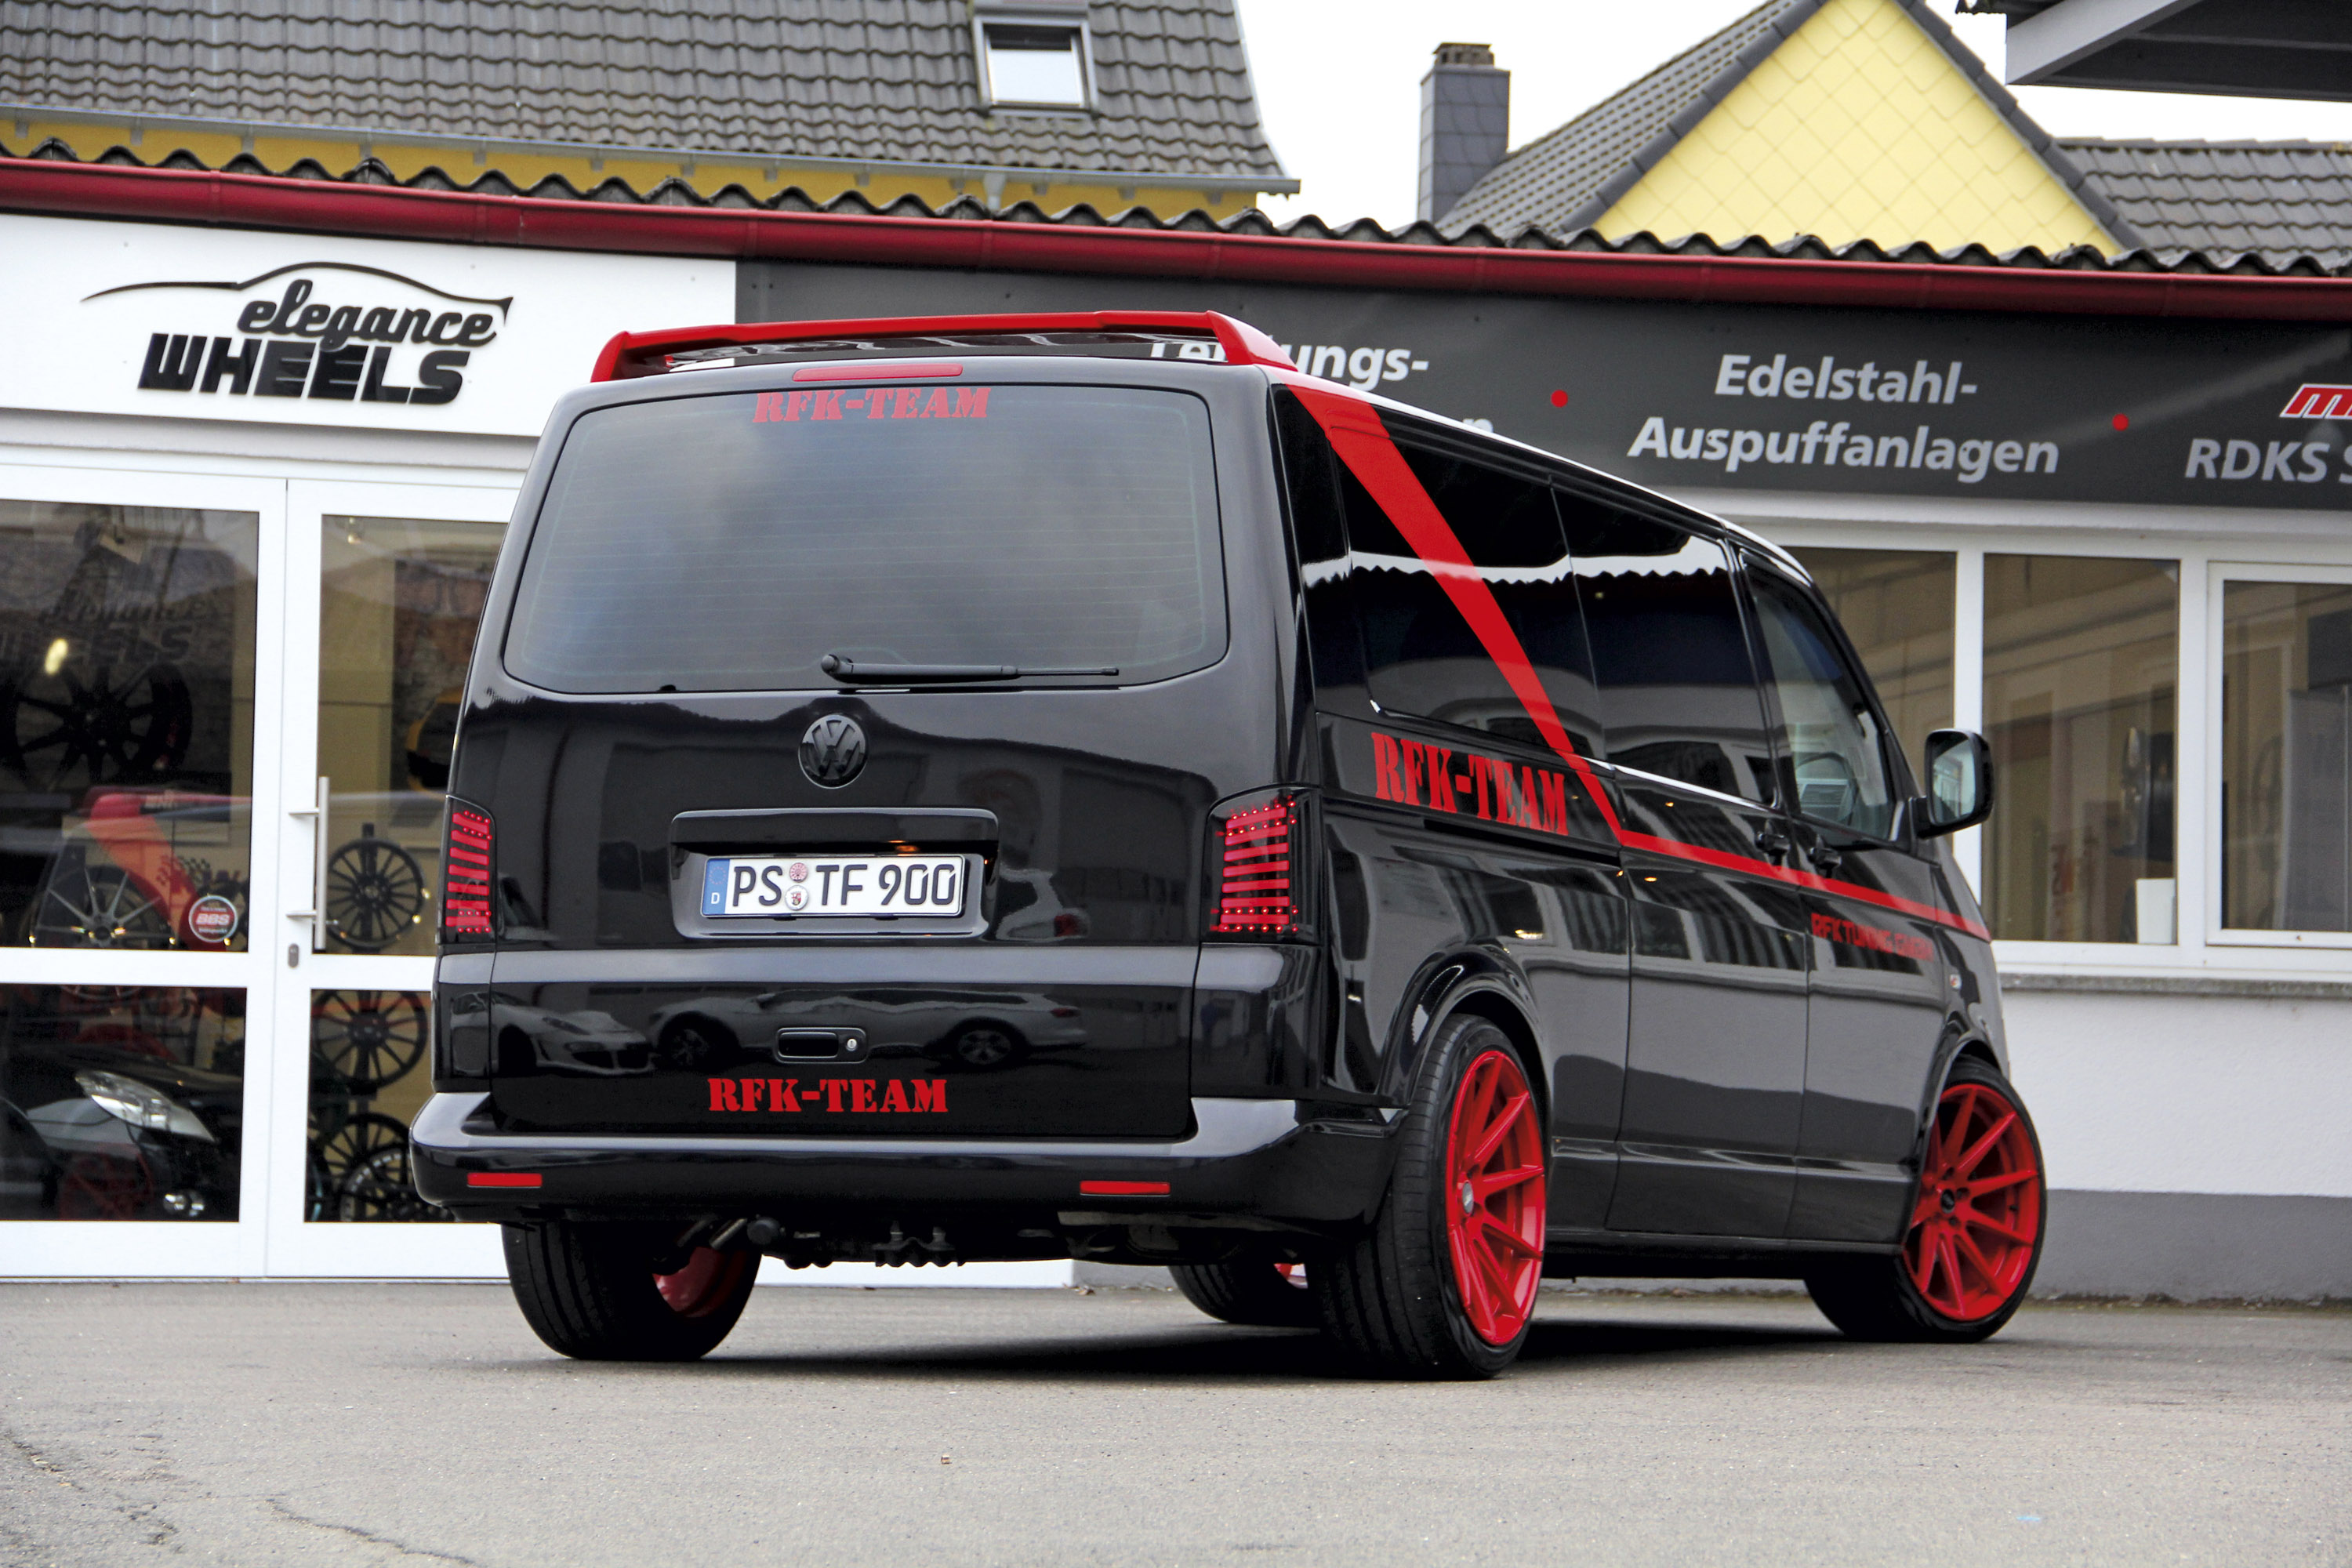 Rfk Tuning Shows A Team Inspired Volkswagen T5 Bus